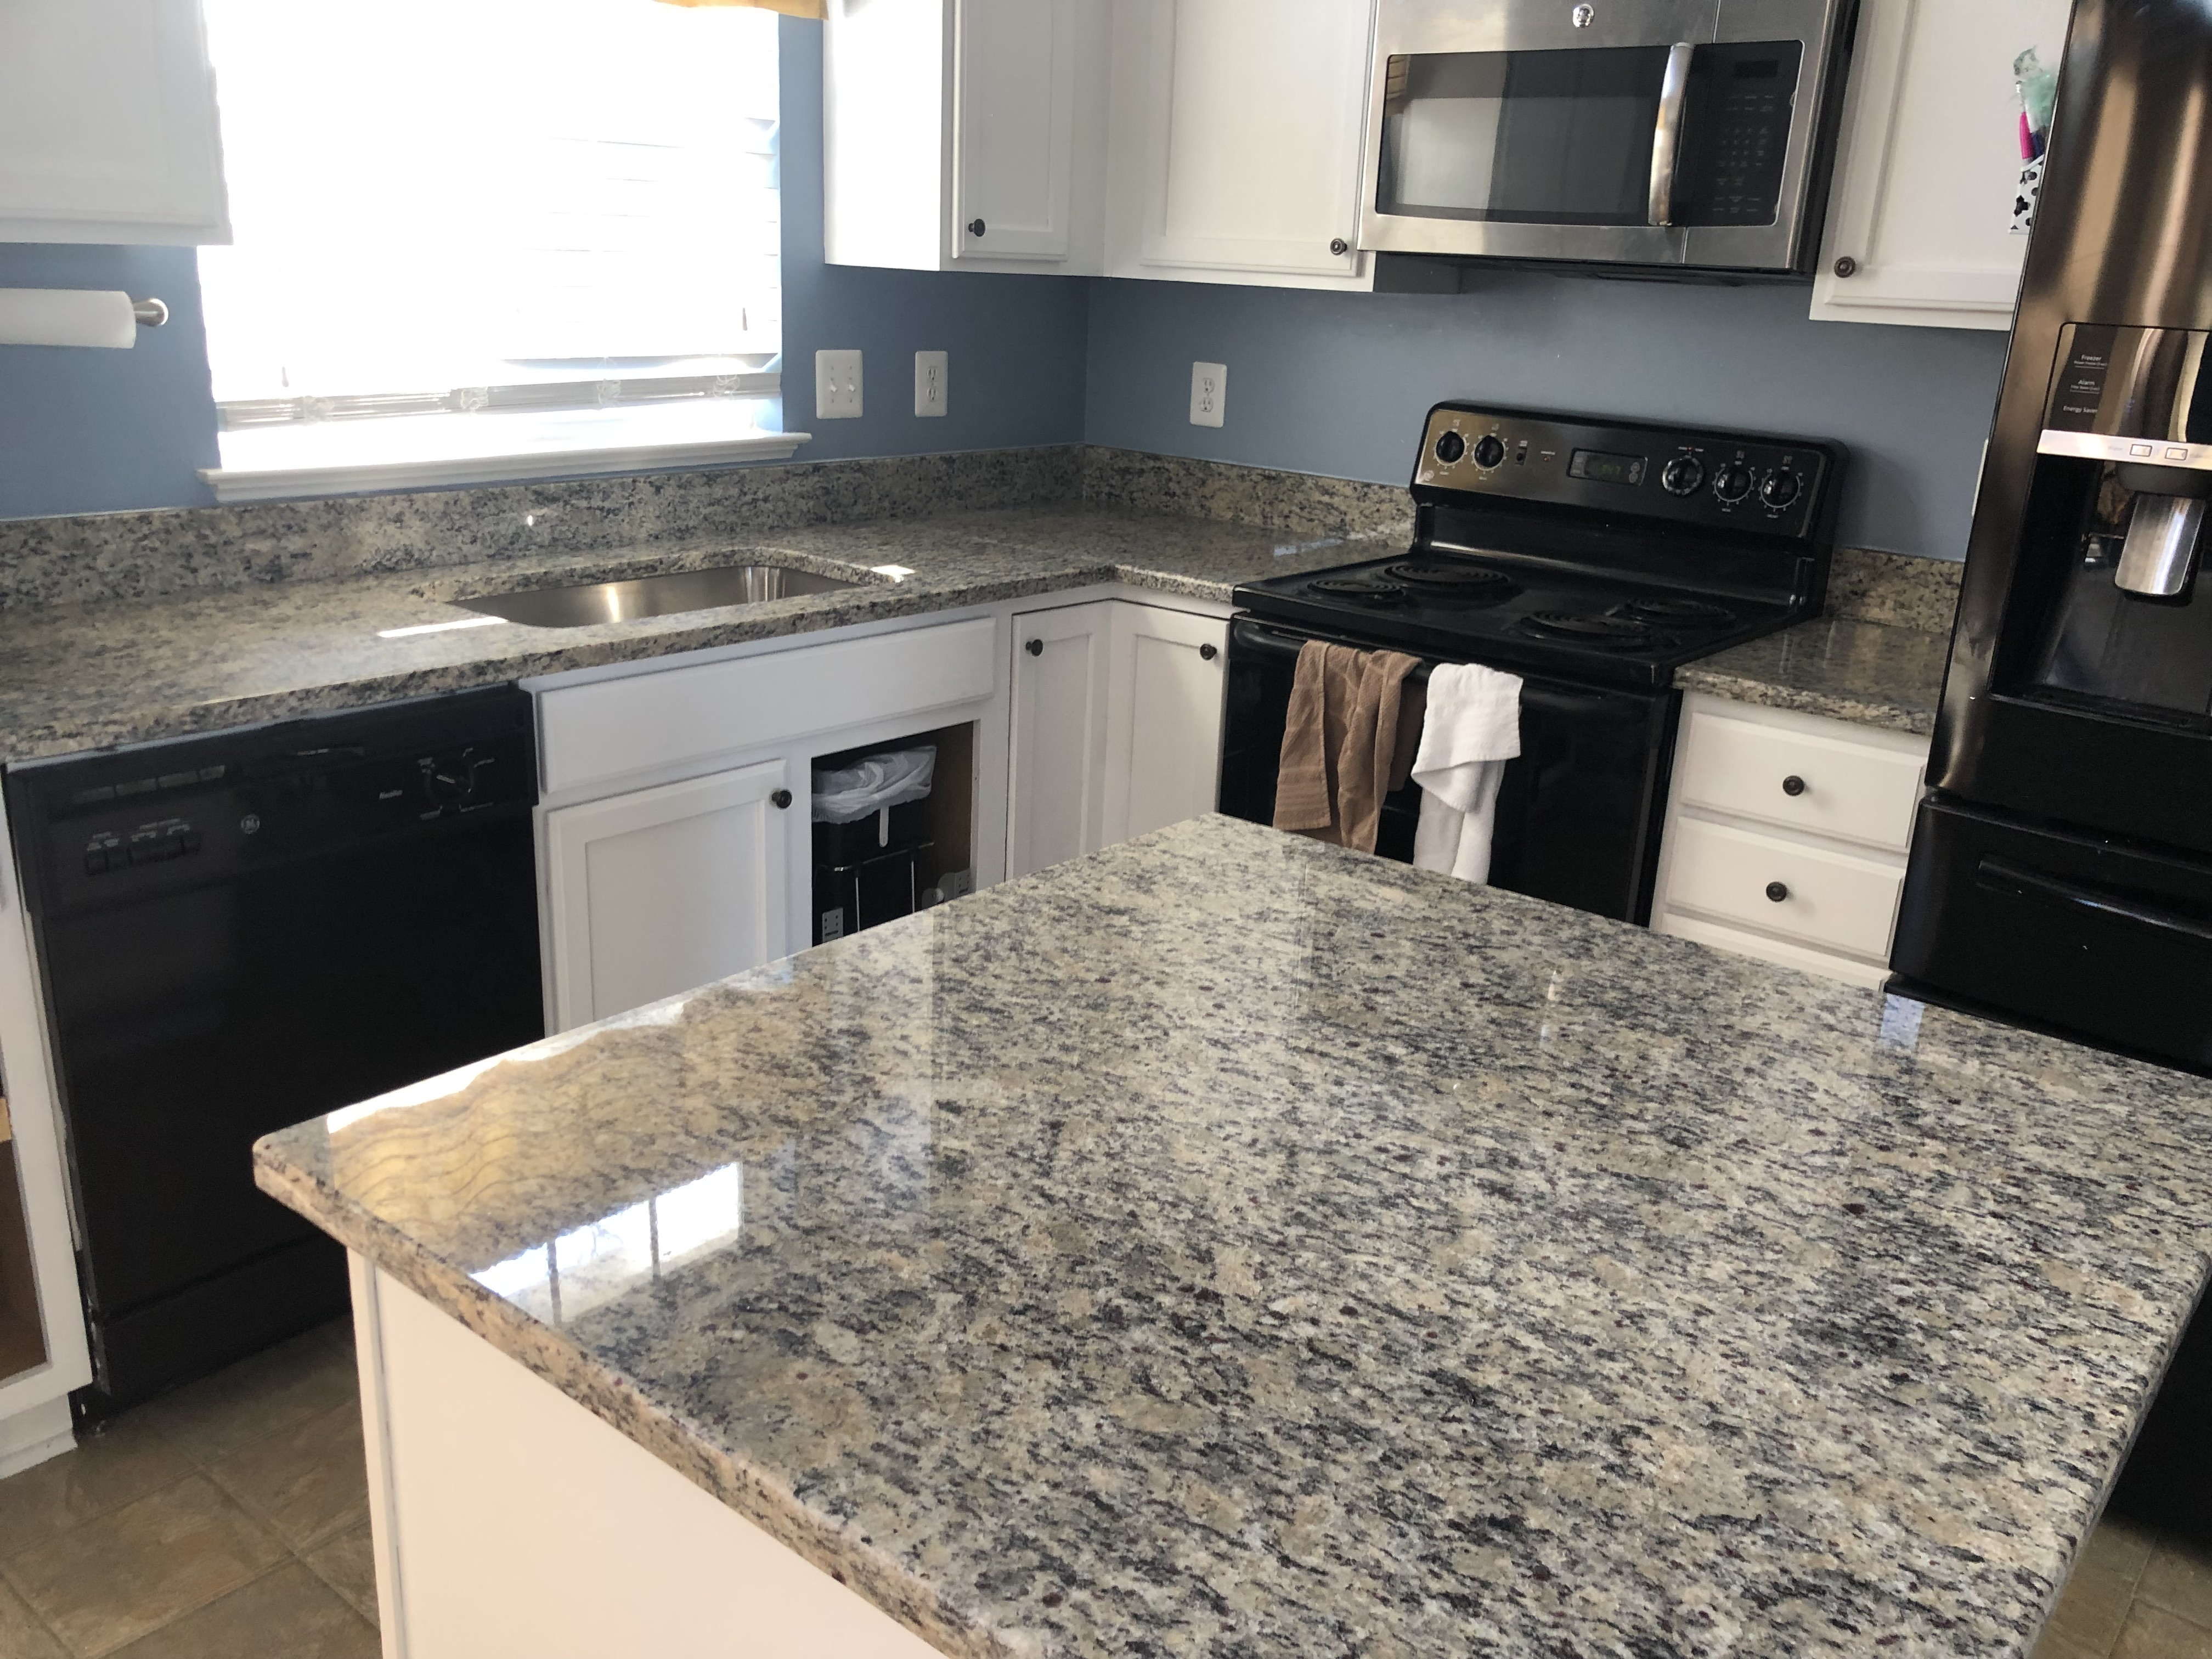 Santa Cecilia Light Granite System Kitchen Countertops